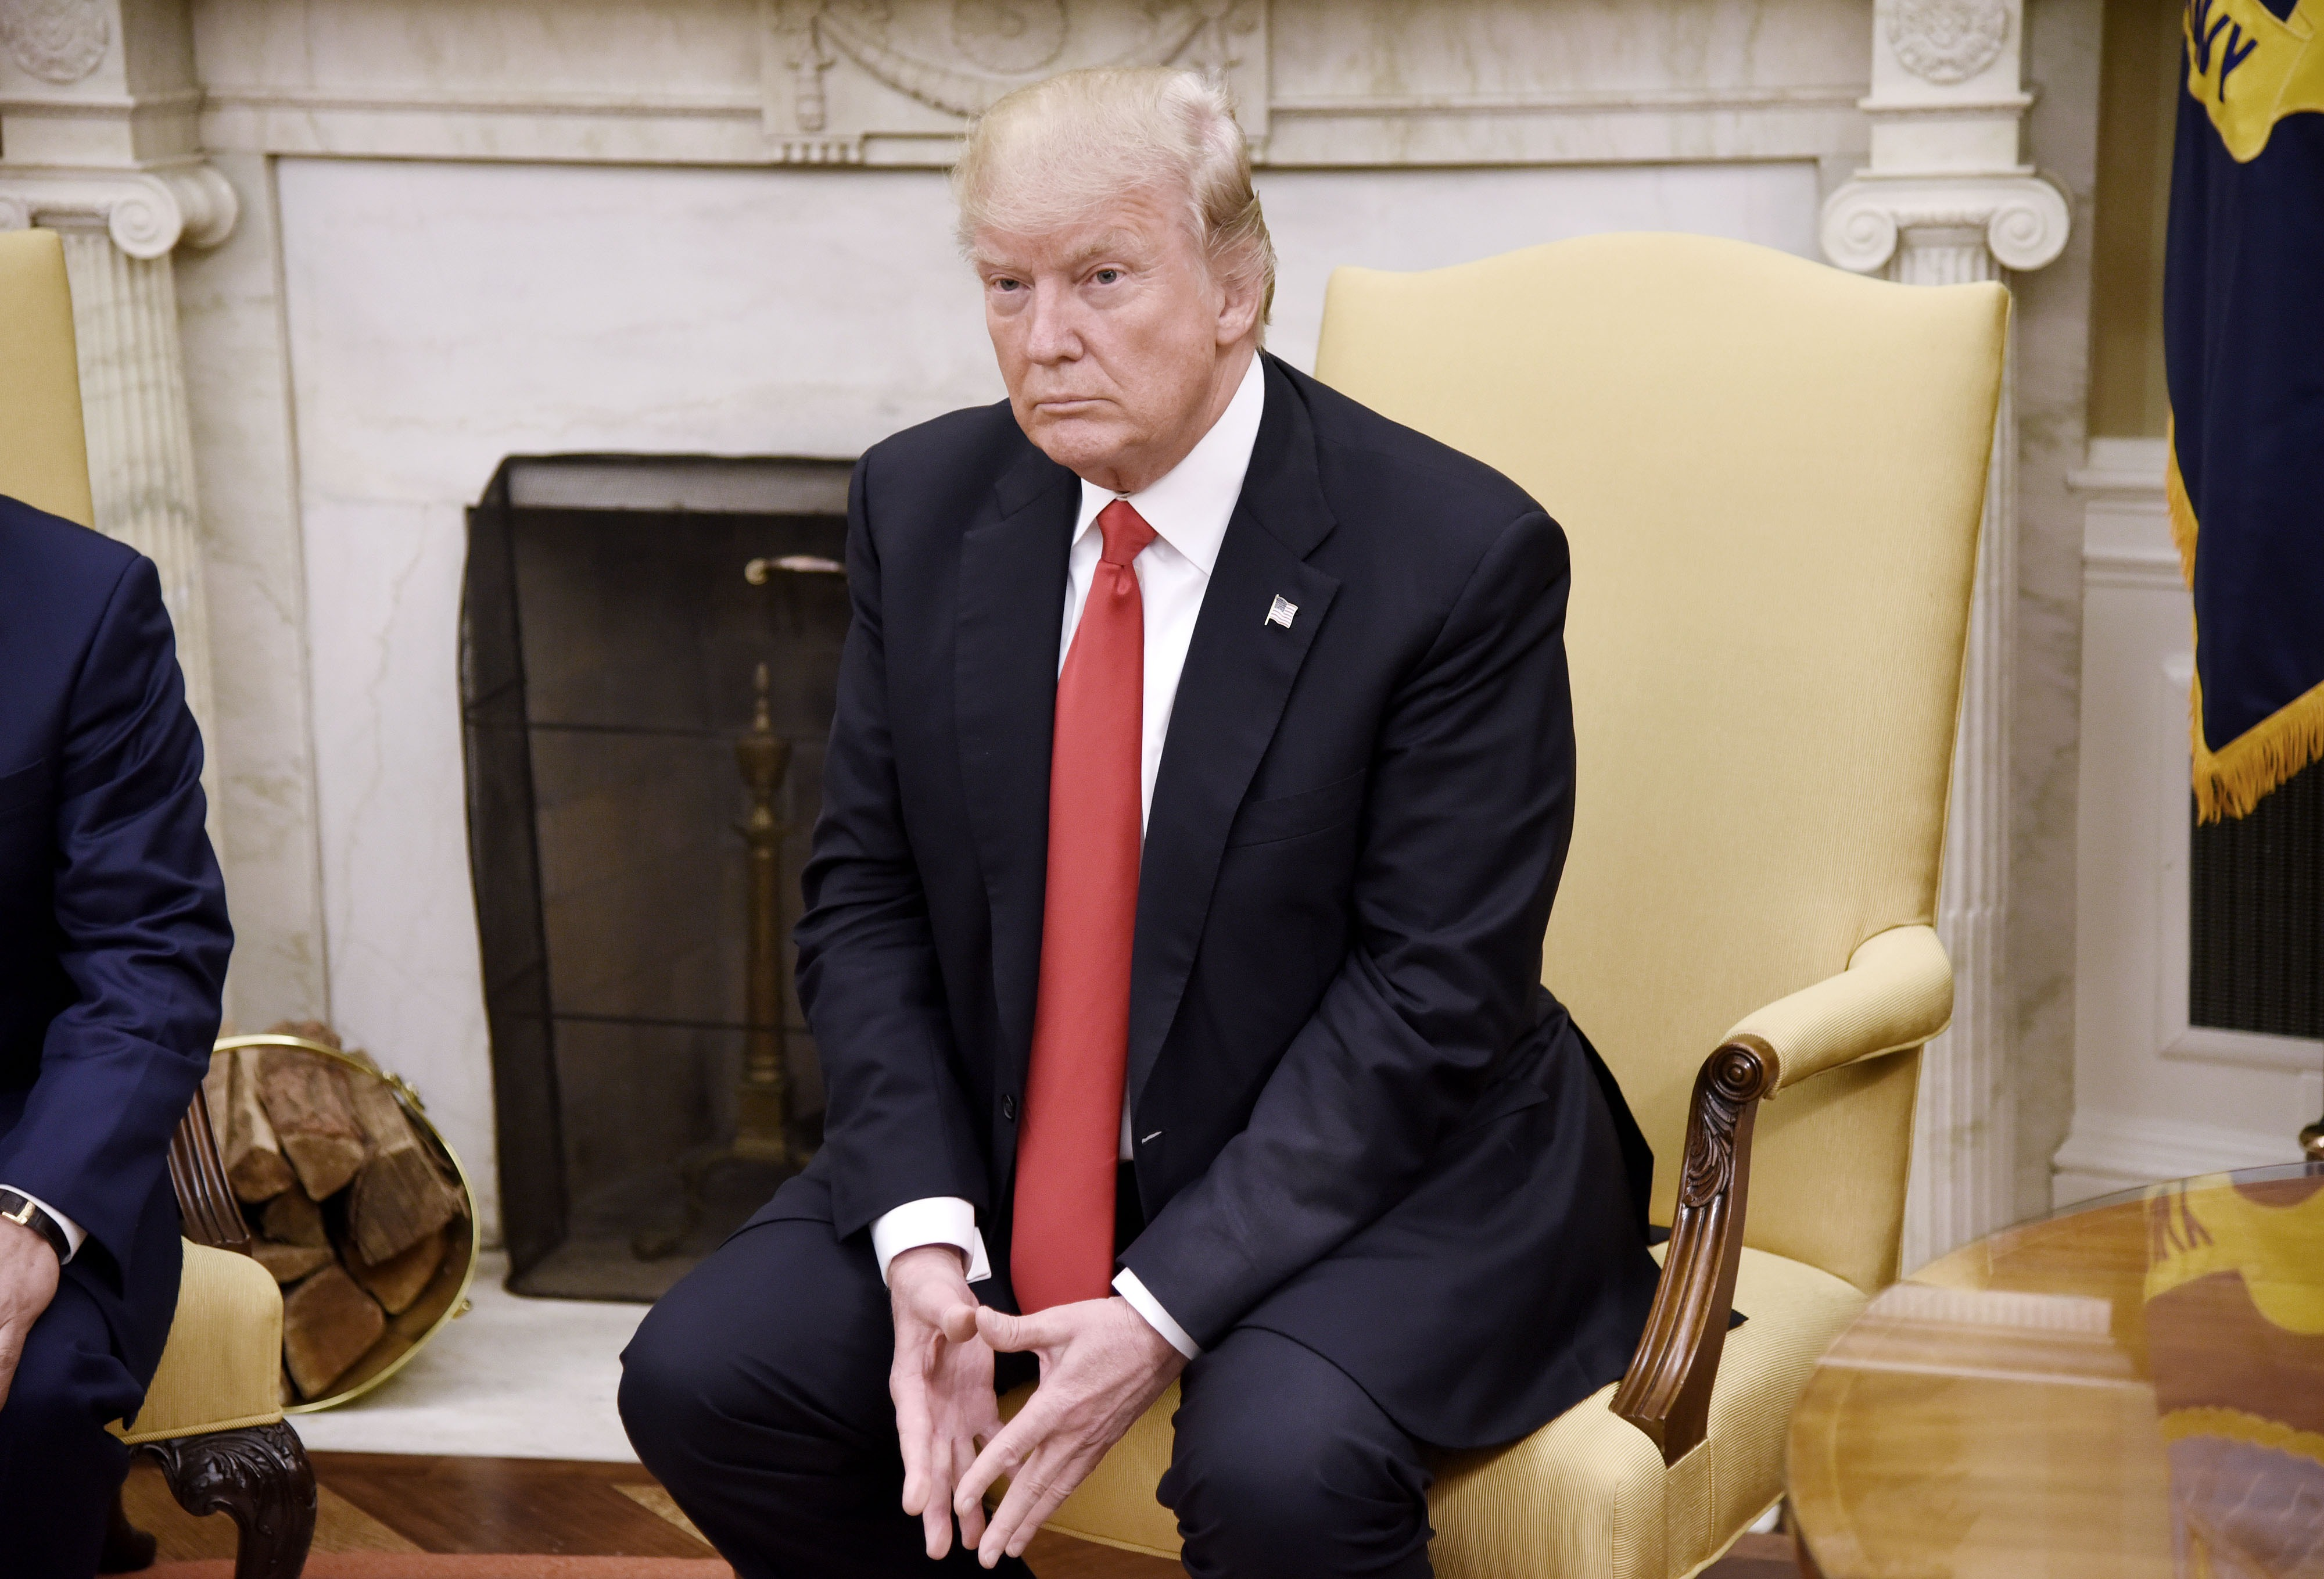 US President Donald Trump looks on during a meeting with Prime Minister Nguyen Xuan Phuc of Vietnam in the Oval Office of the White House, on May 31, 2017 in Washington, DC.